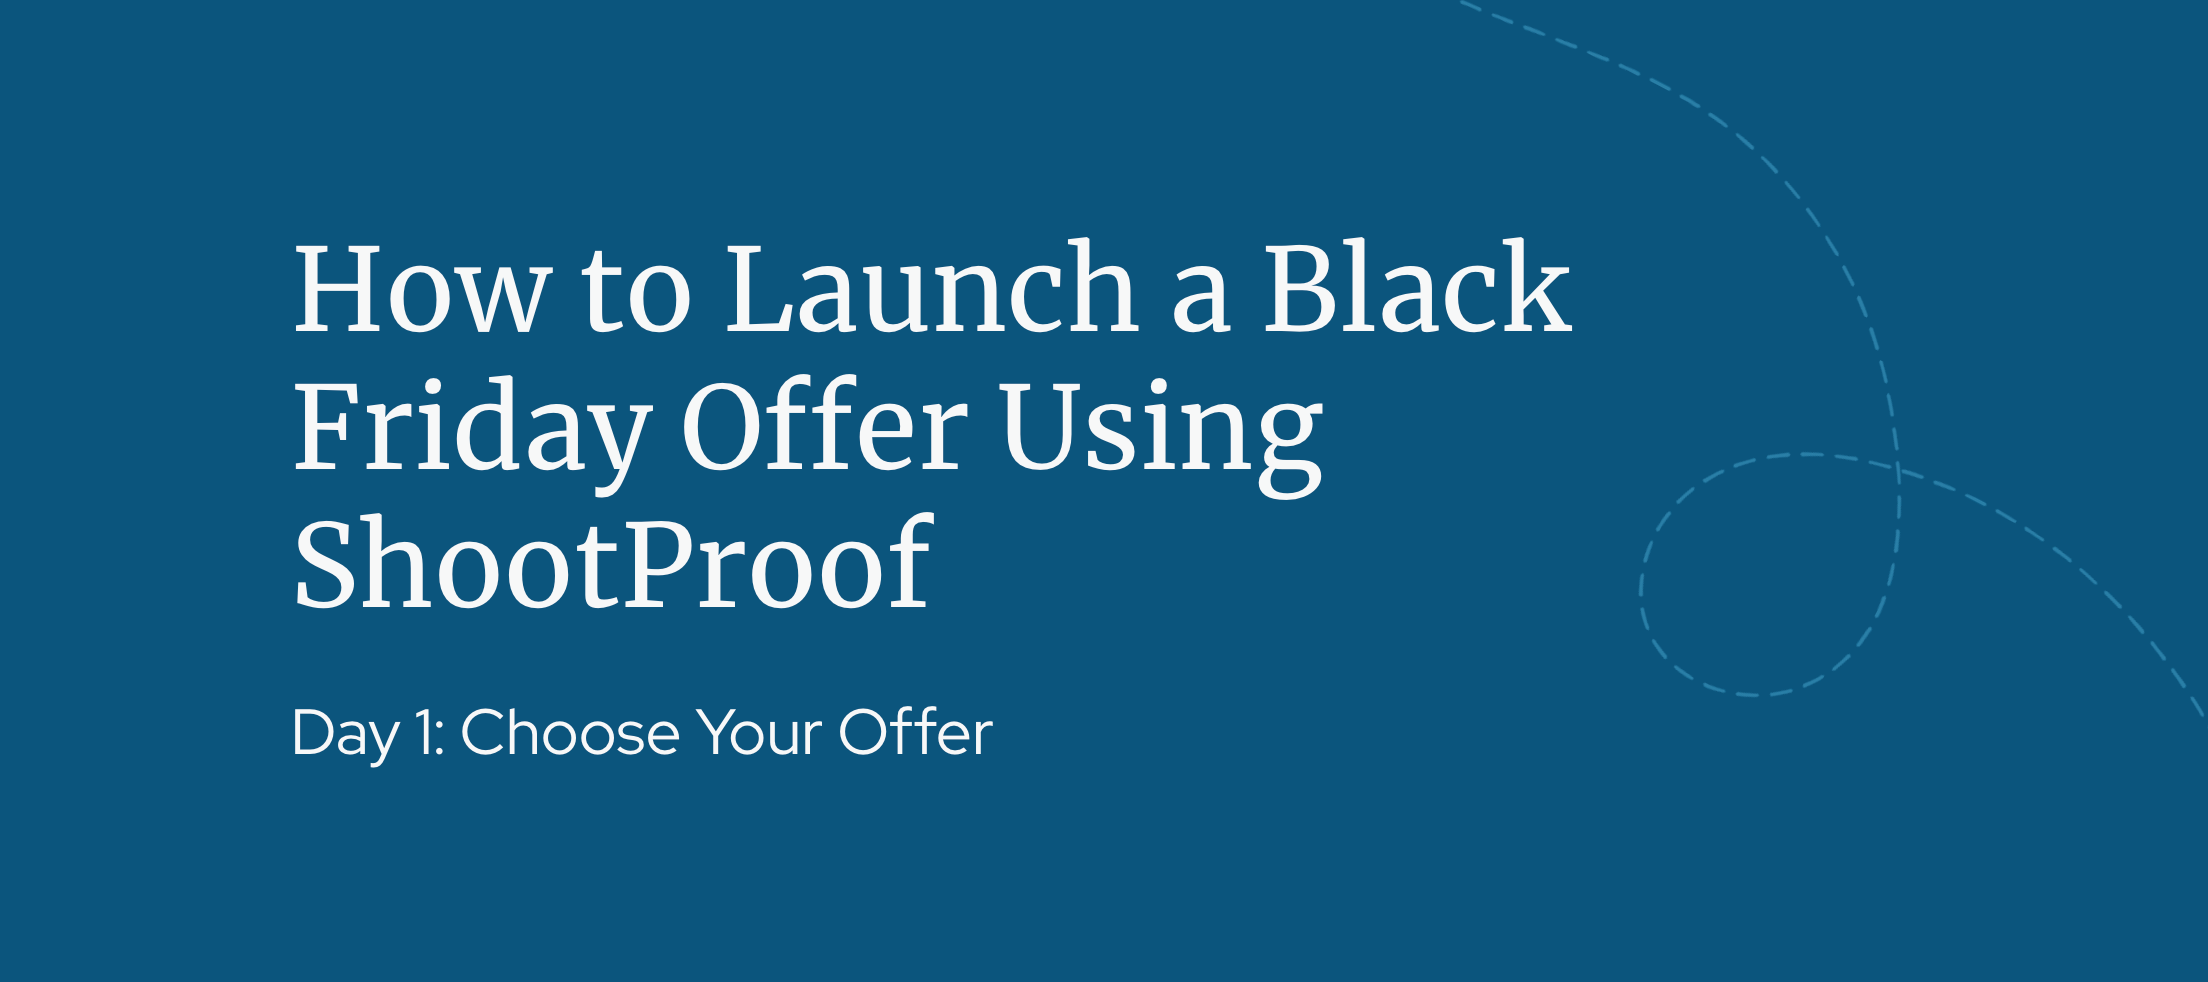 Day 1: How to Launch a Black Friday Offer Using ShootProof